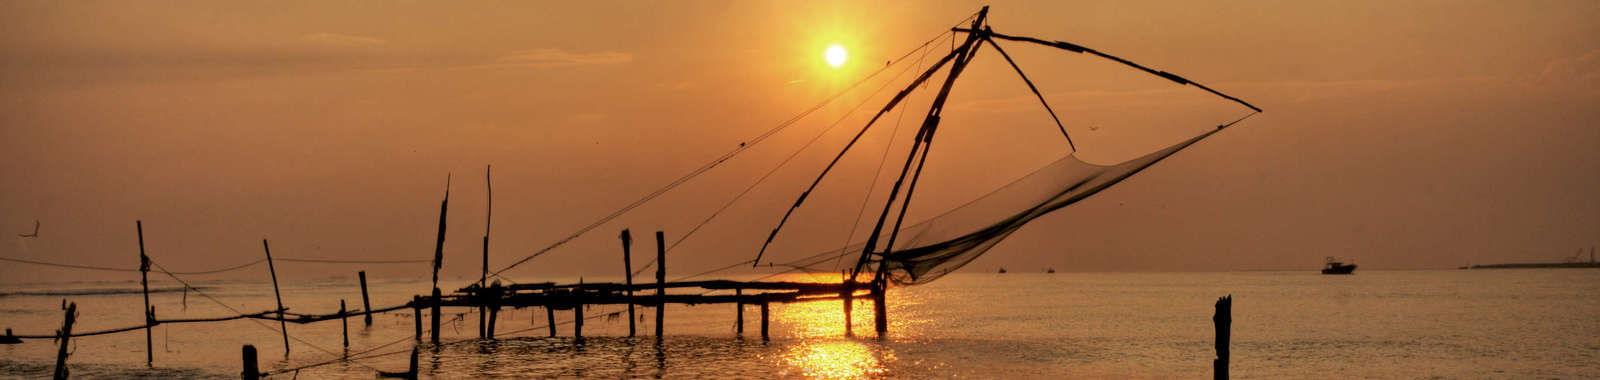 Experience a magical sunset at Cochin's famous fishing nets on a luxury holiday to Kerala